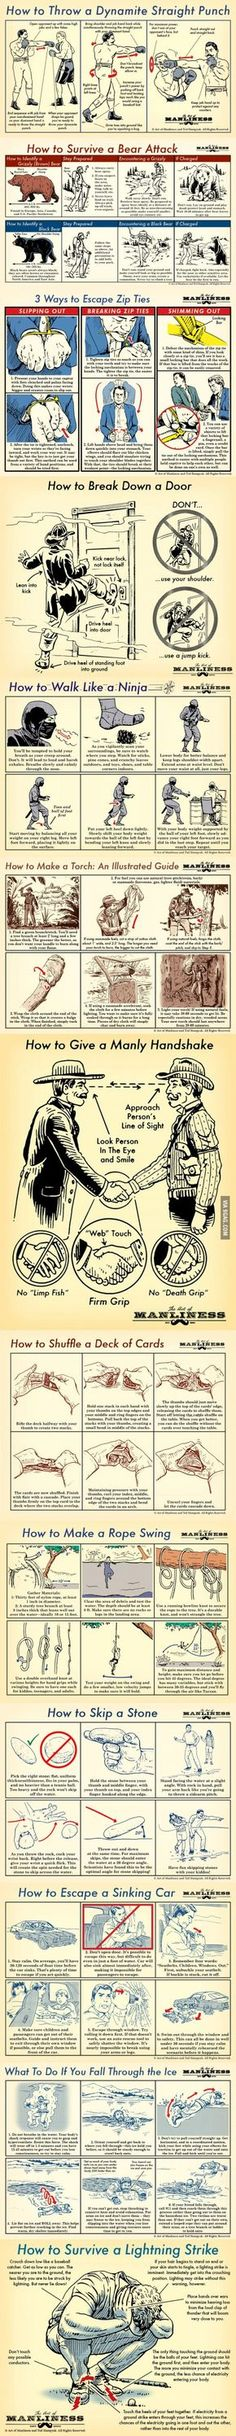 Manly Skills for men. And women